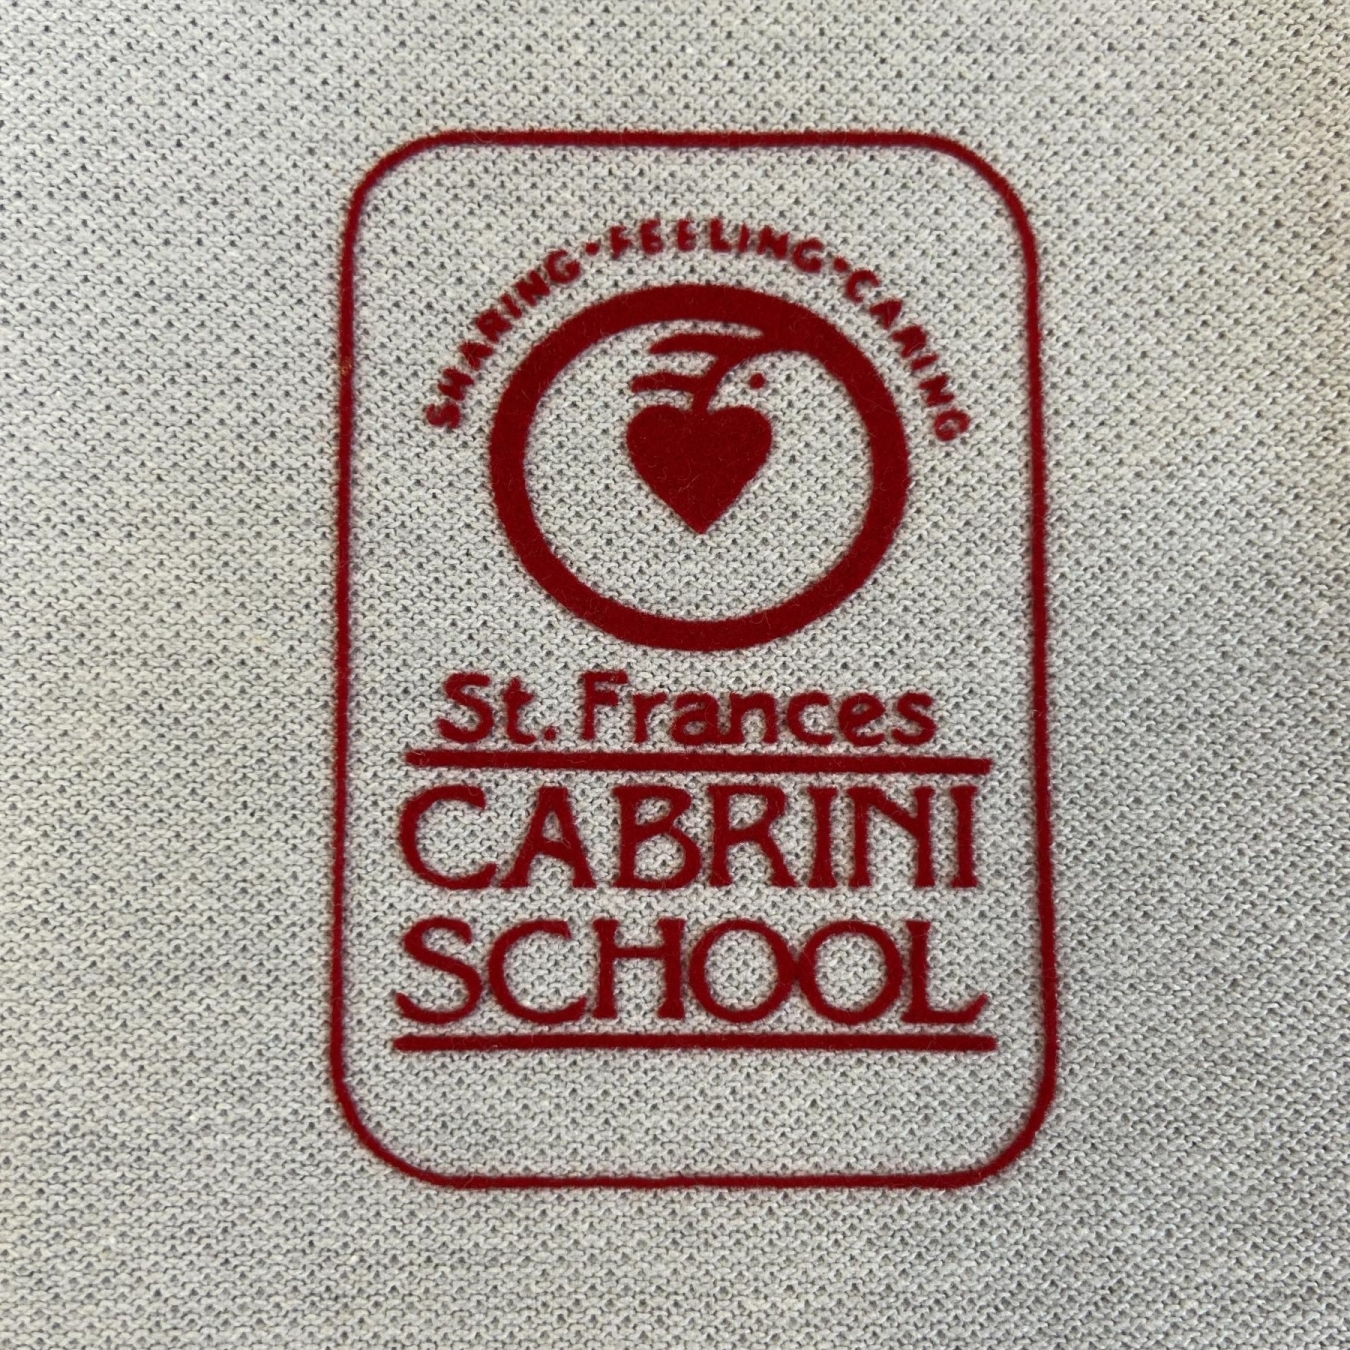 St. Frances Cabrini School Patch